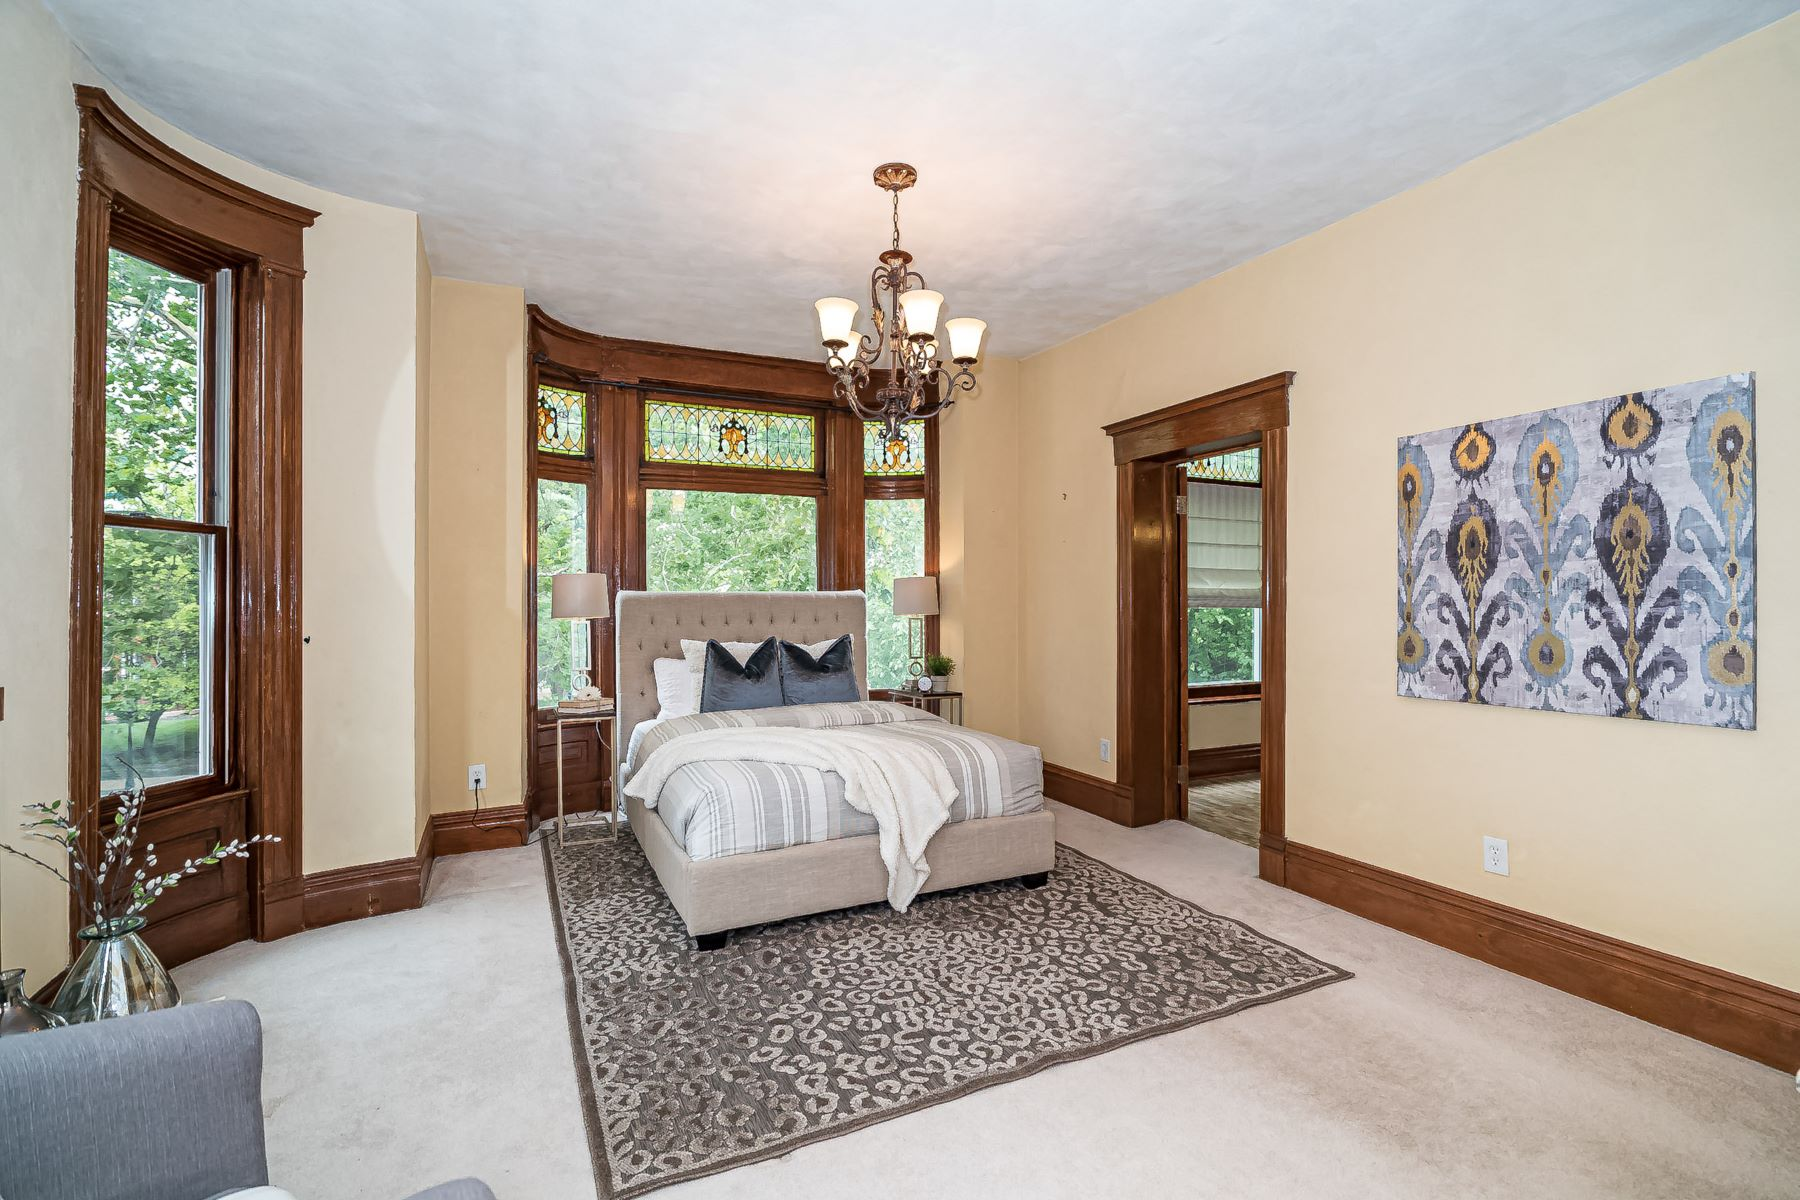 Additional photo for property listing at Vibrant Neighborhood - Historical Home 4362 West Pine Boulevard St. Louis, Missouri 63108 United States